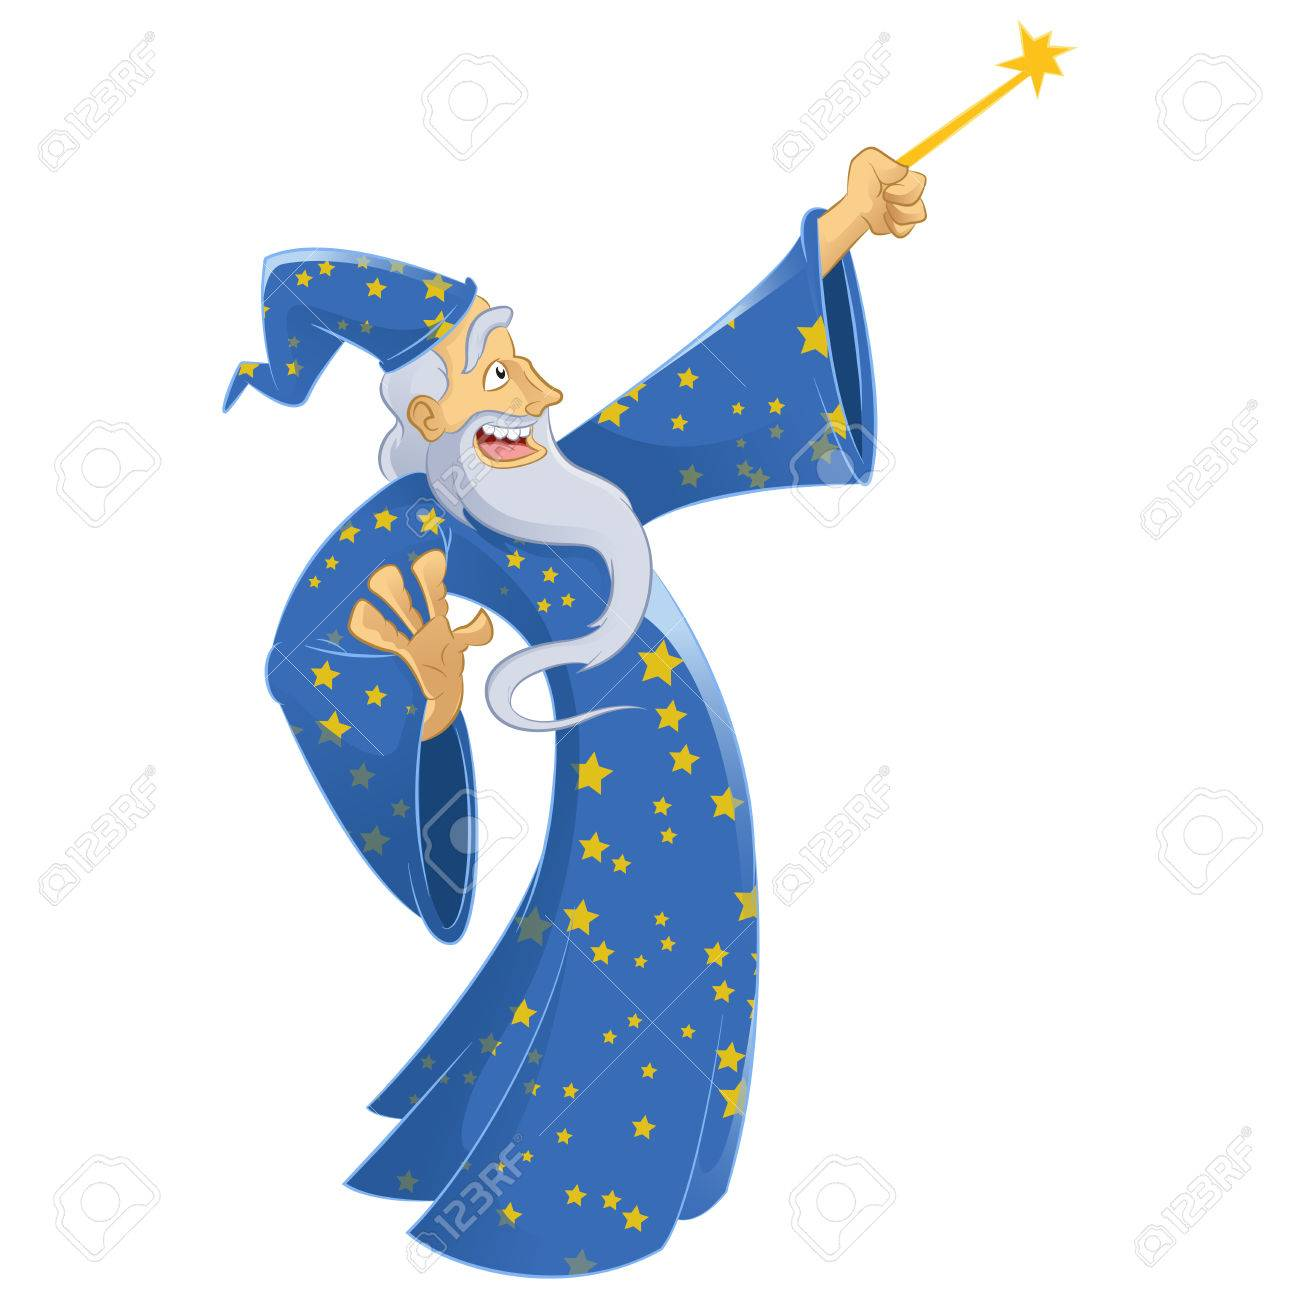 Vector Image Of An Cartoon Smiling Wizard Royalty Free Cliparts ...